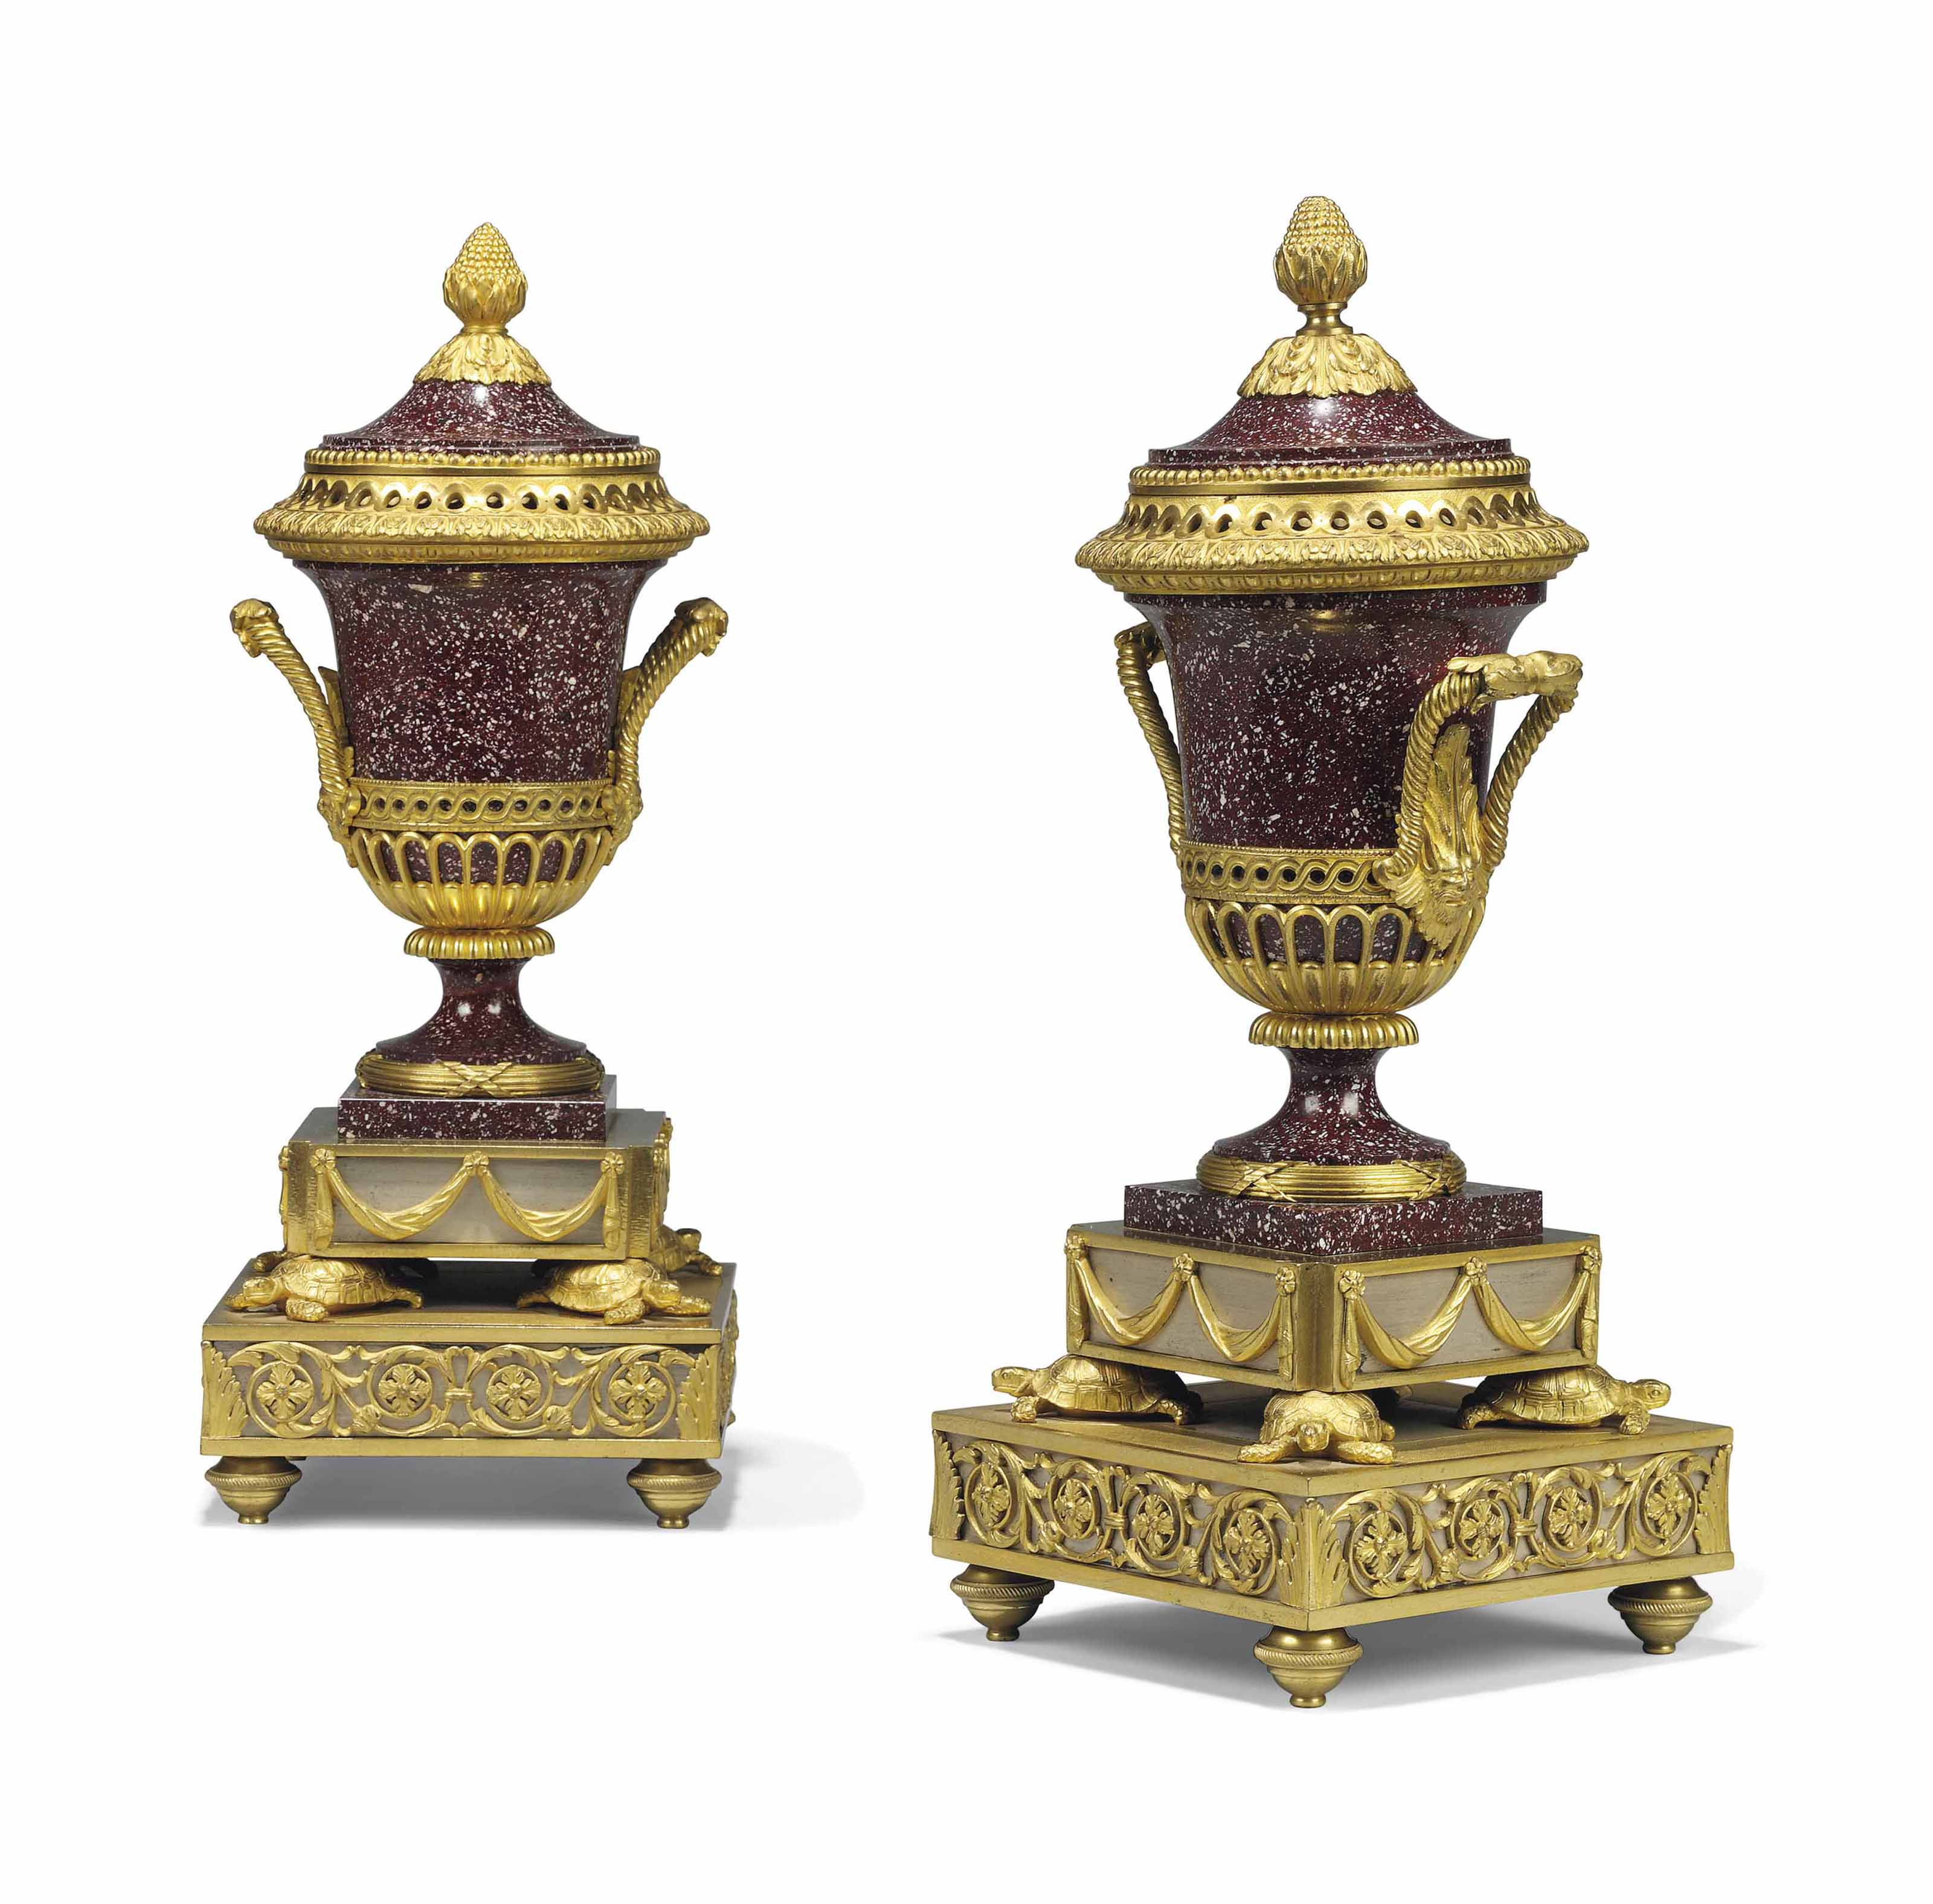 A PAIR OF FRENCH ORMOLU-MOUNTED PORPHYRY BRULE PARFUMS